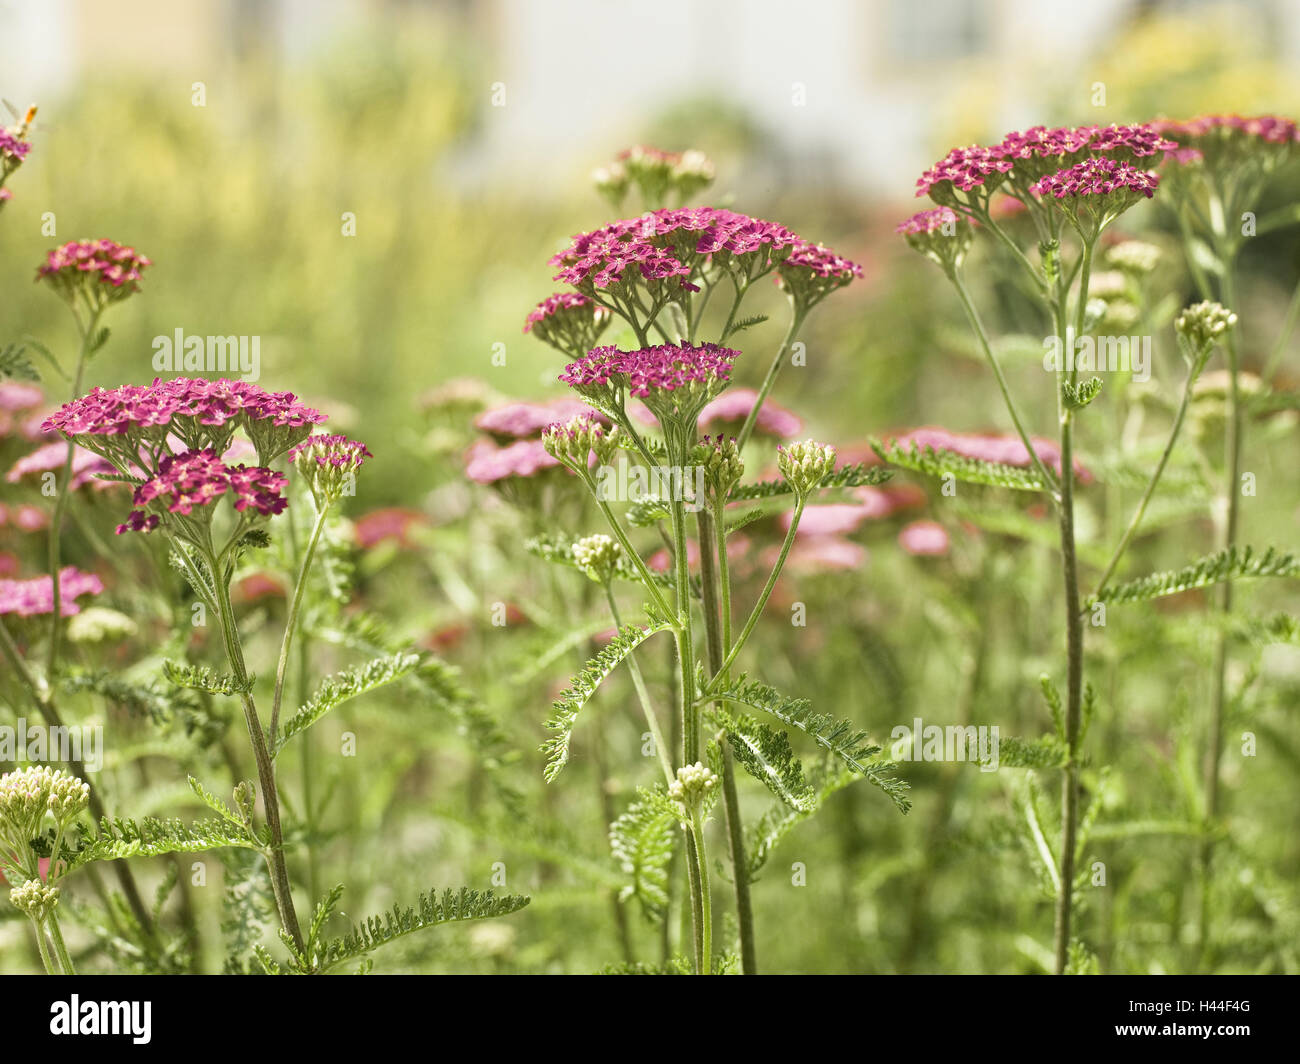 gemeinsamen schafgarbe achillea millefolium 39 paprika 39 detail bl ten rosa pflanze blumen. Black Bedroom Furniture Sets. Home Design Ideas